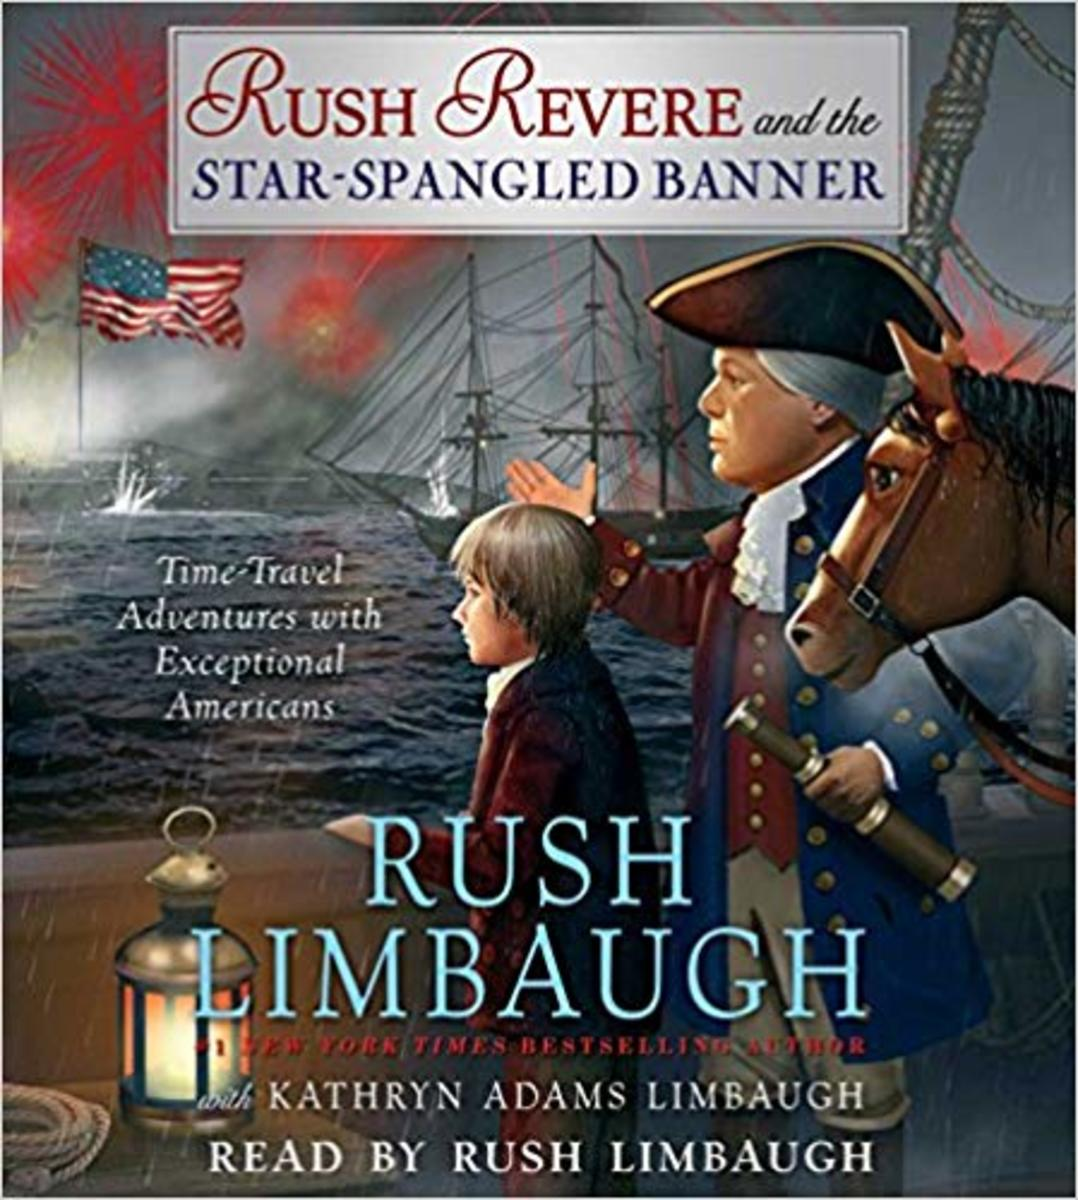 Rush Revere and the Star-Spangled Banner Audio CD by Rush Limbaugh (Audio CD)